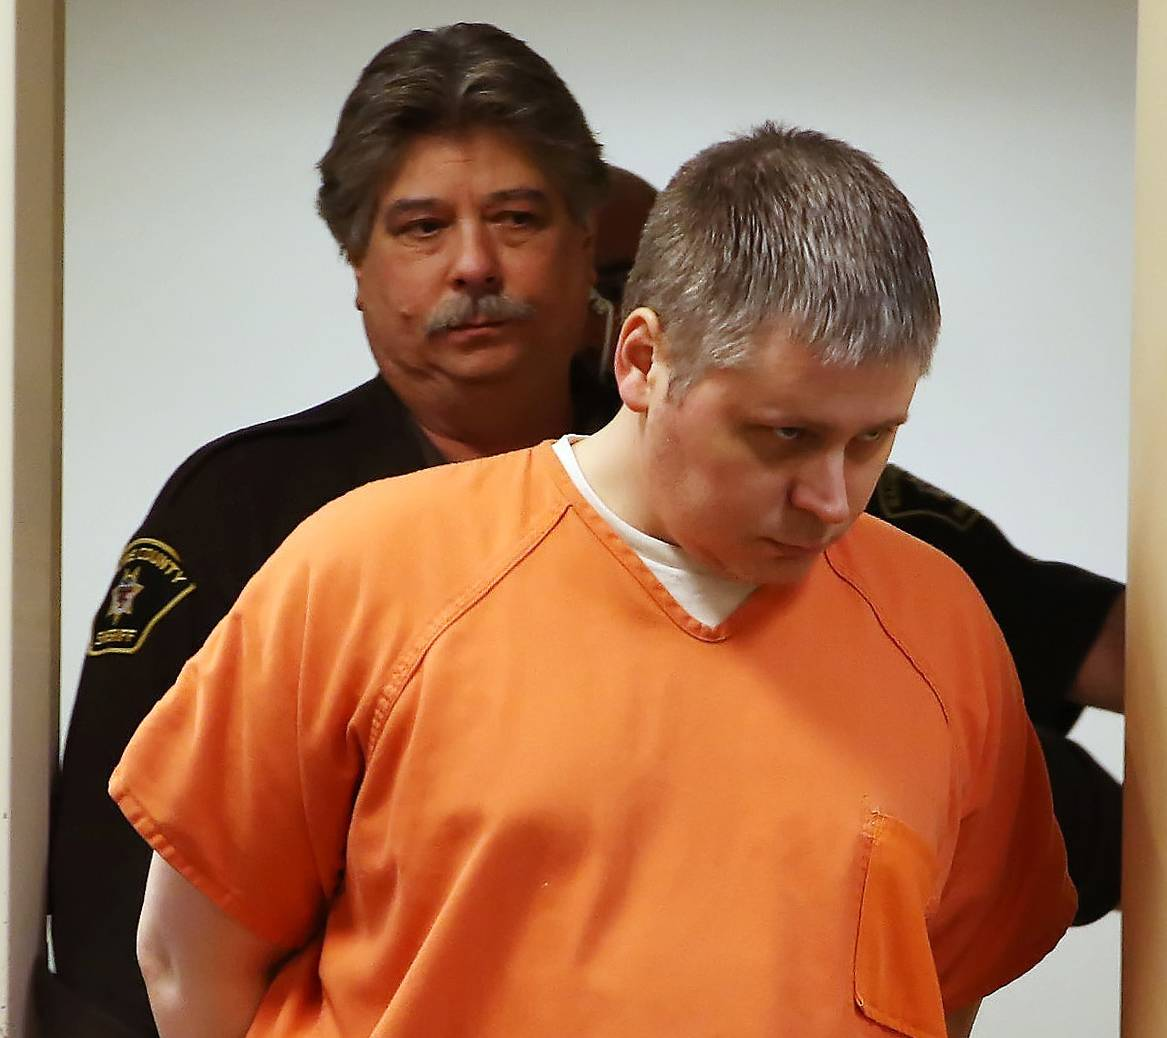 James P. Eaton, shown during a court appearance earlier this month, was ordered held over for trial Wednesday after a Wisconsin judge heard evidence linking him to the 1997 murder of Palatine teen Amber Creek.